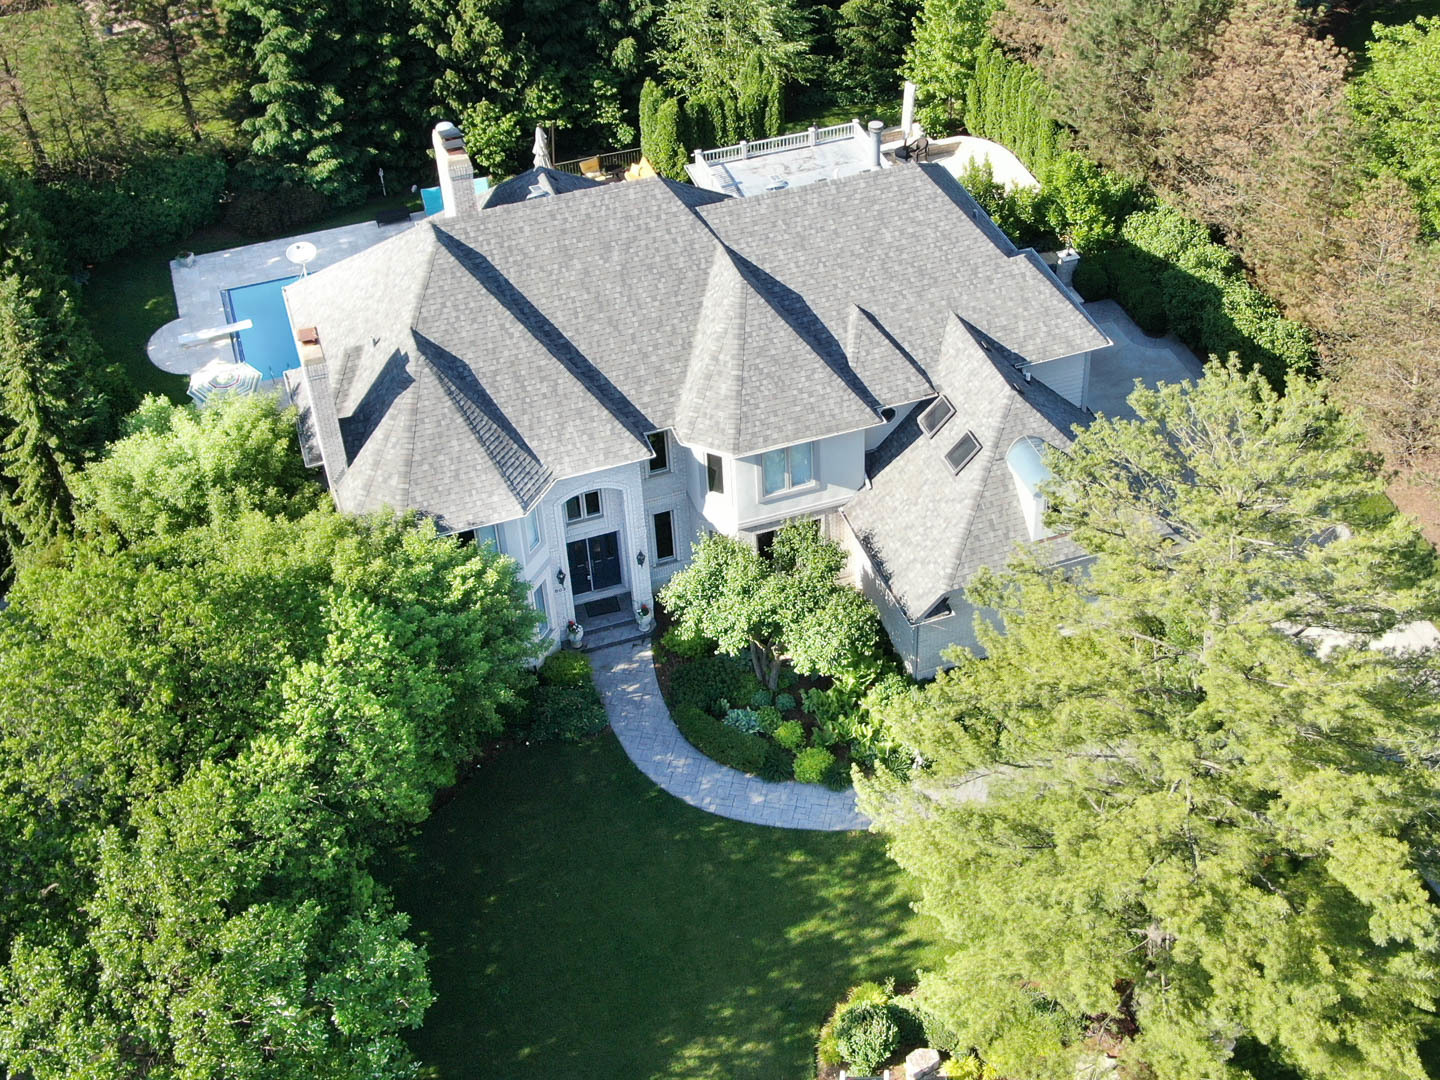 603 Chateaux Bourne Drive, South Barrington, Illinois 5 Bedroom as one of Homes & Land Real Estate